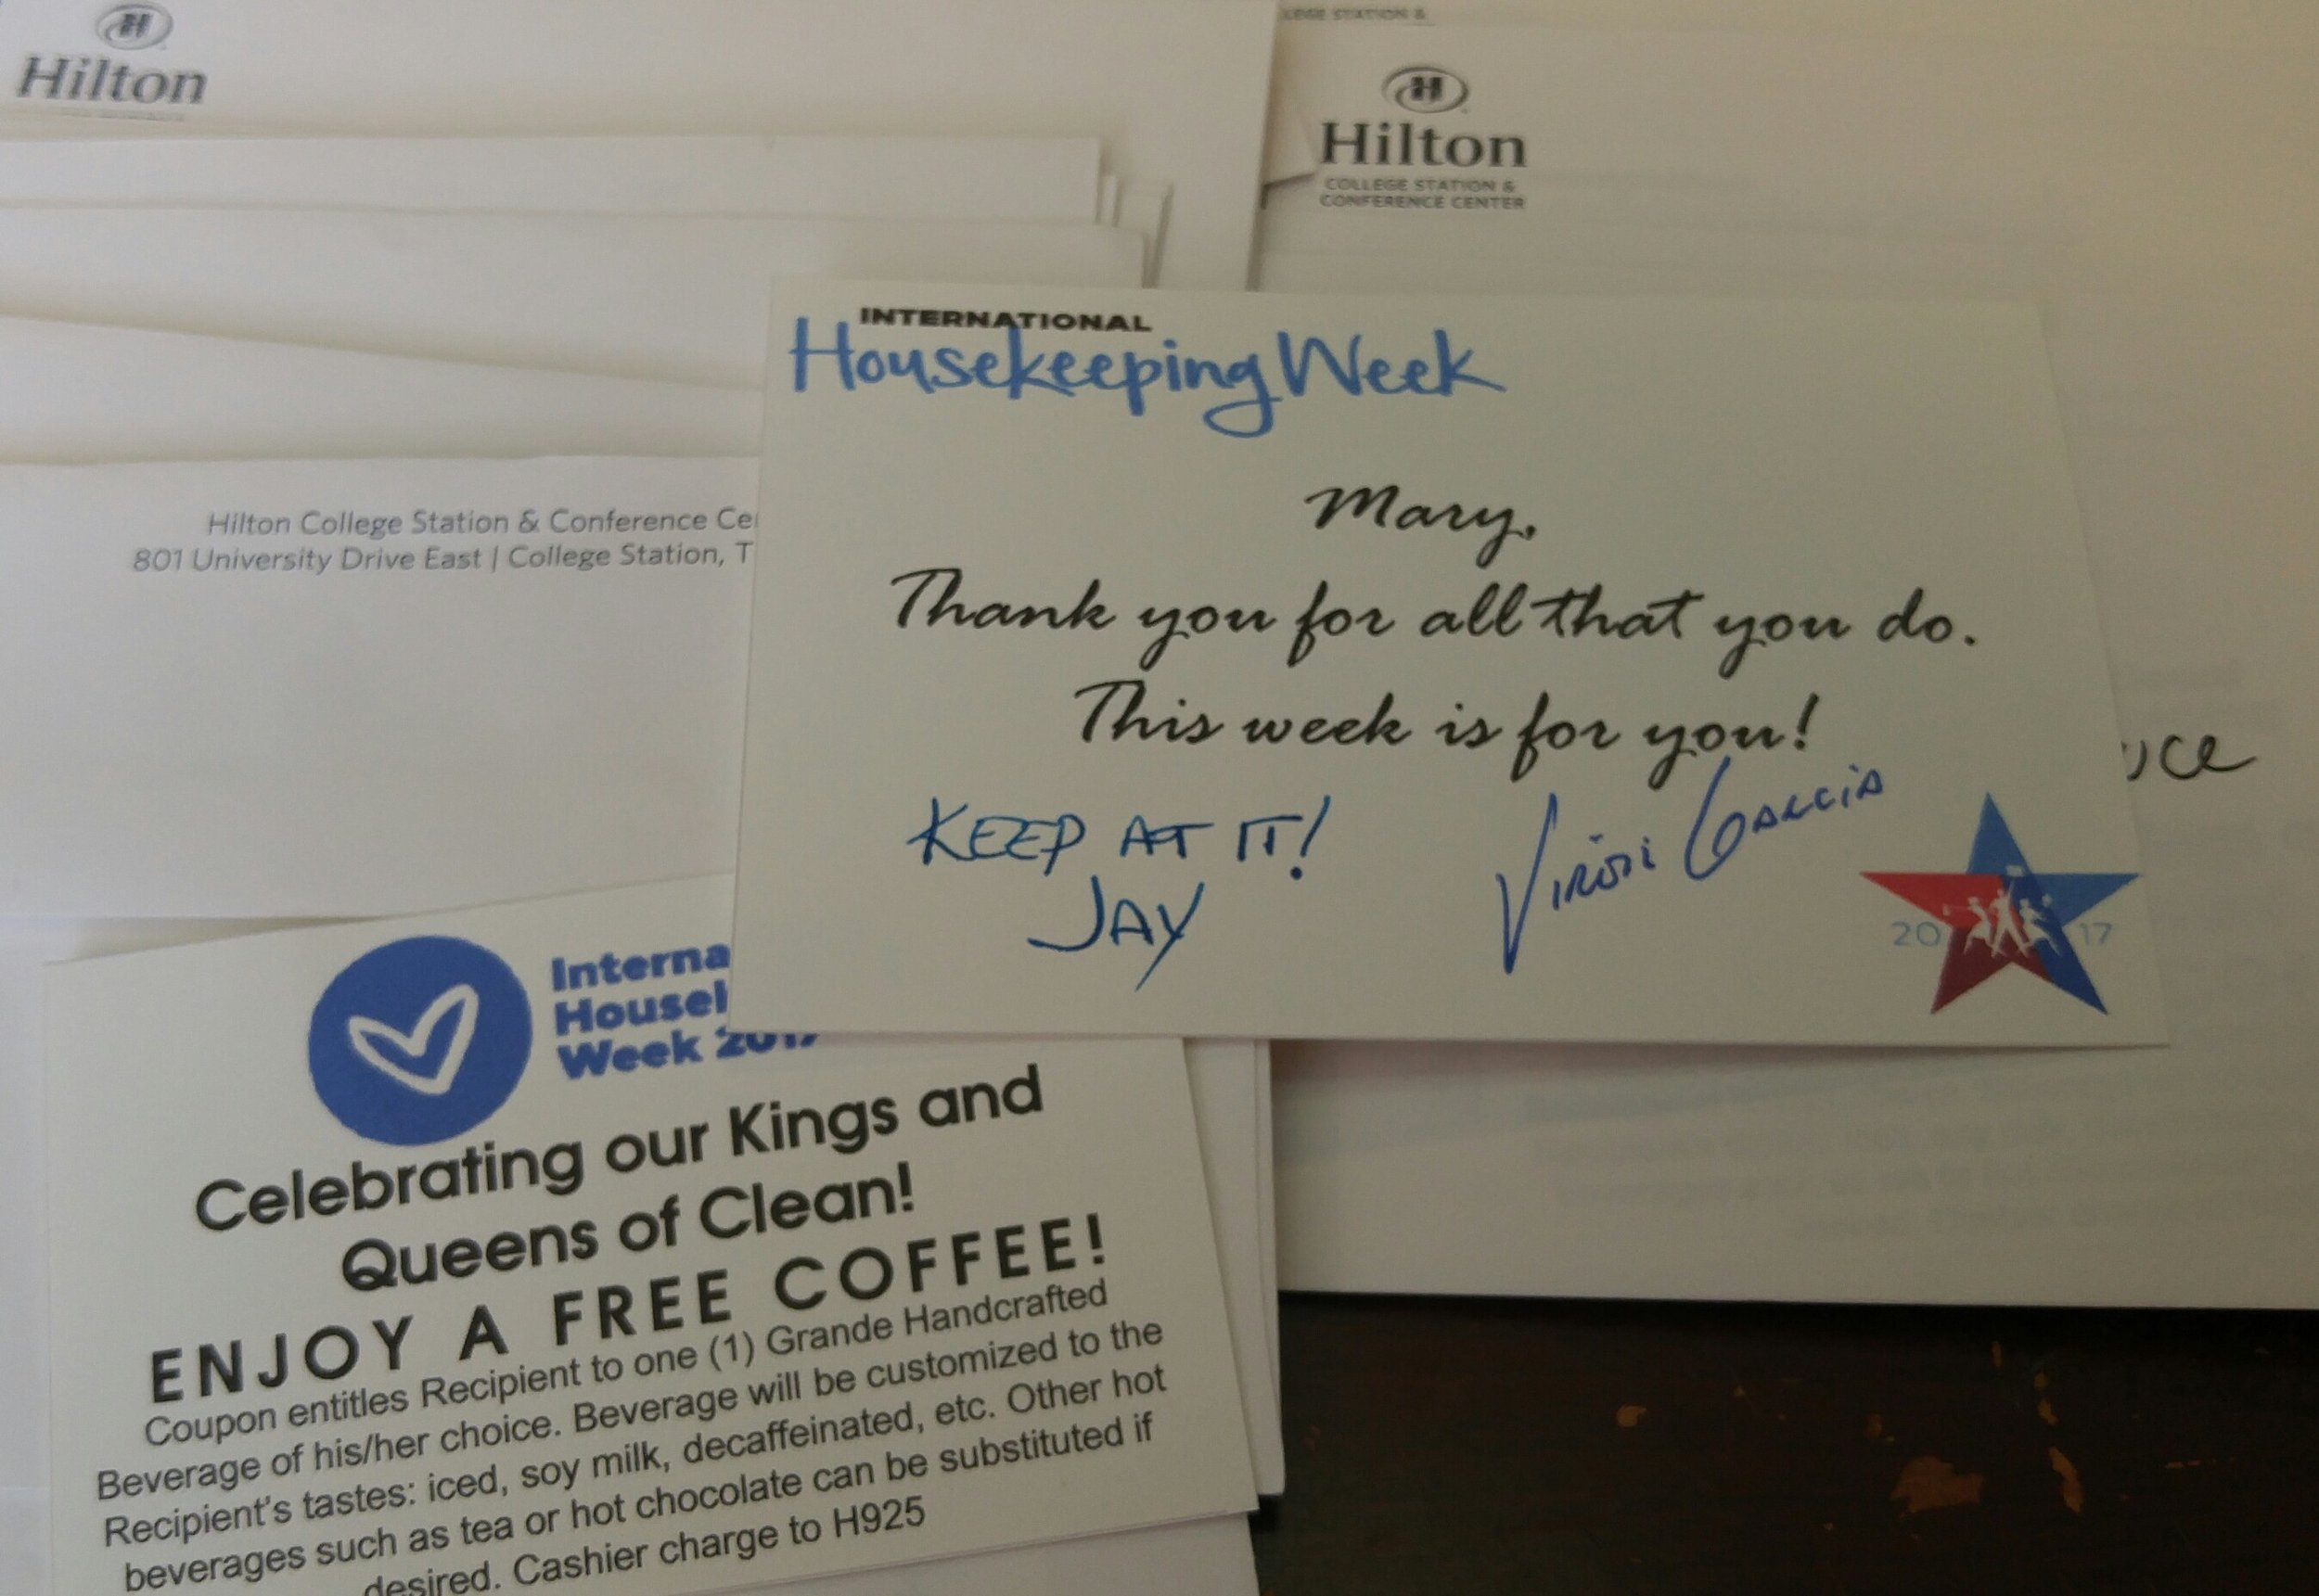 A nice note from our GM and HR Director!